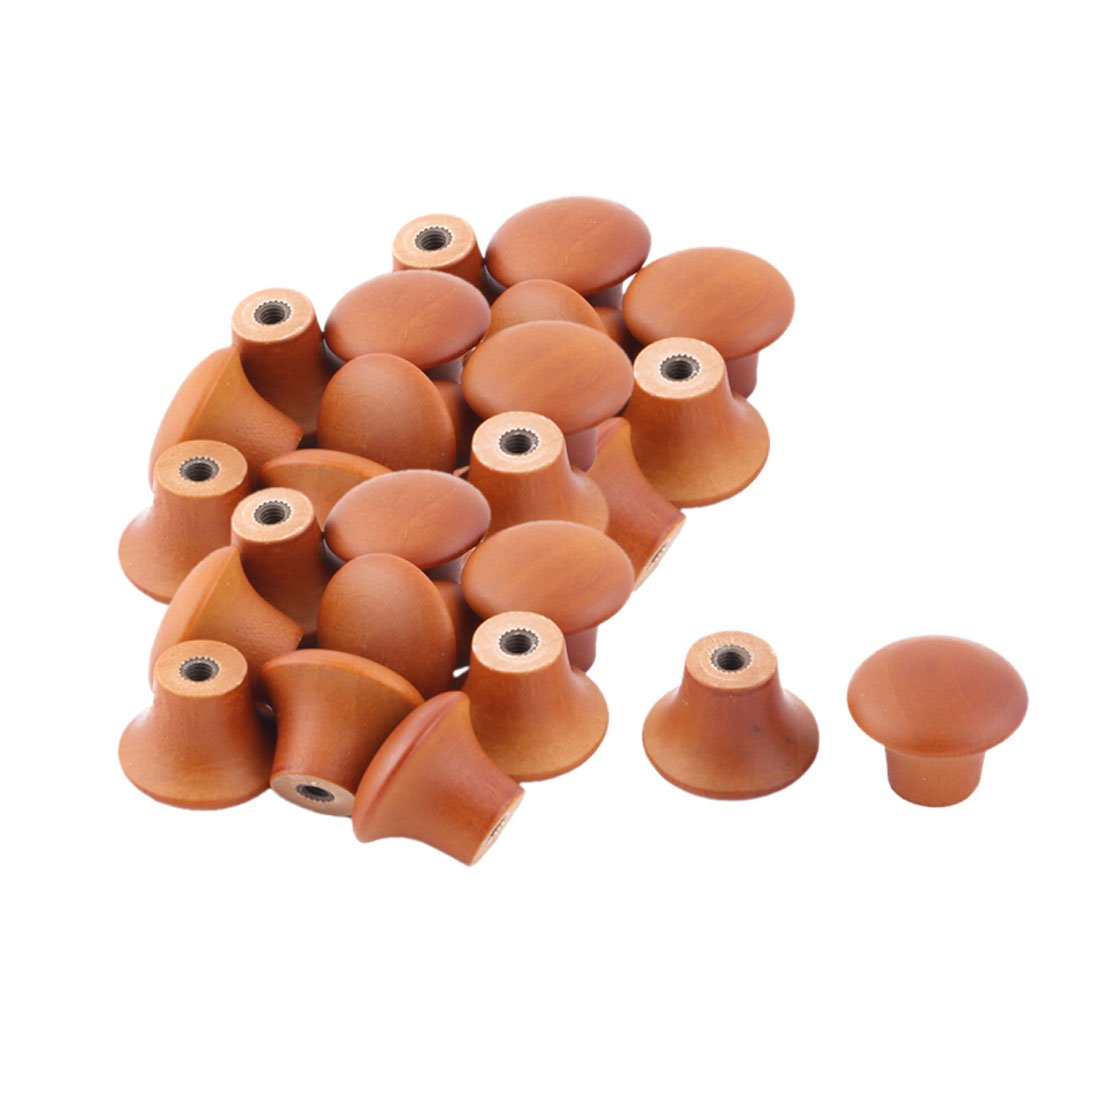 uxcell Wood Office Home Round Door Closet Drawer Box Case Pull Handle Grip Knob 26pcs